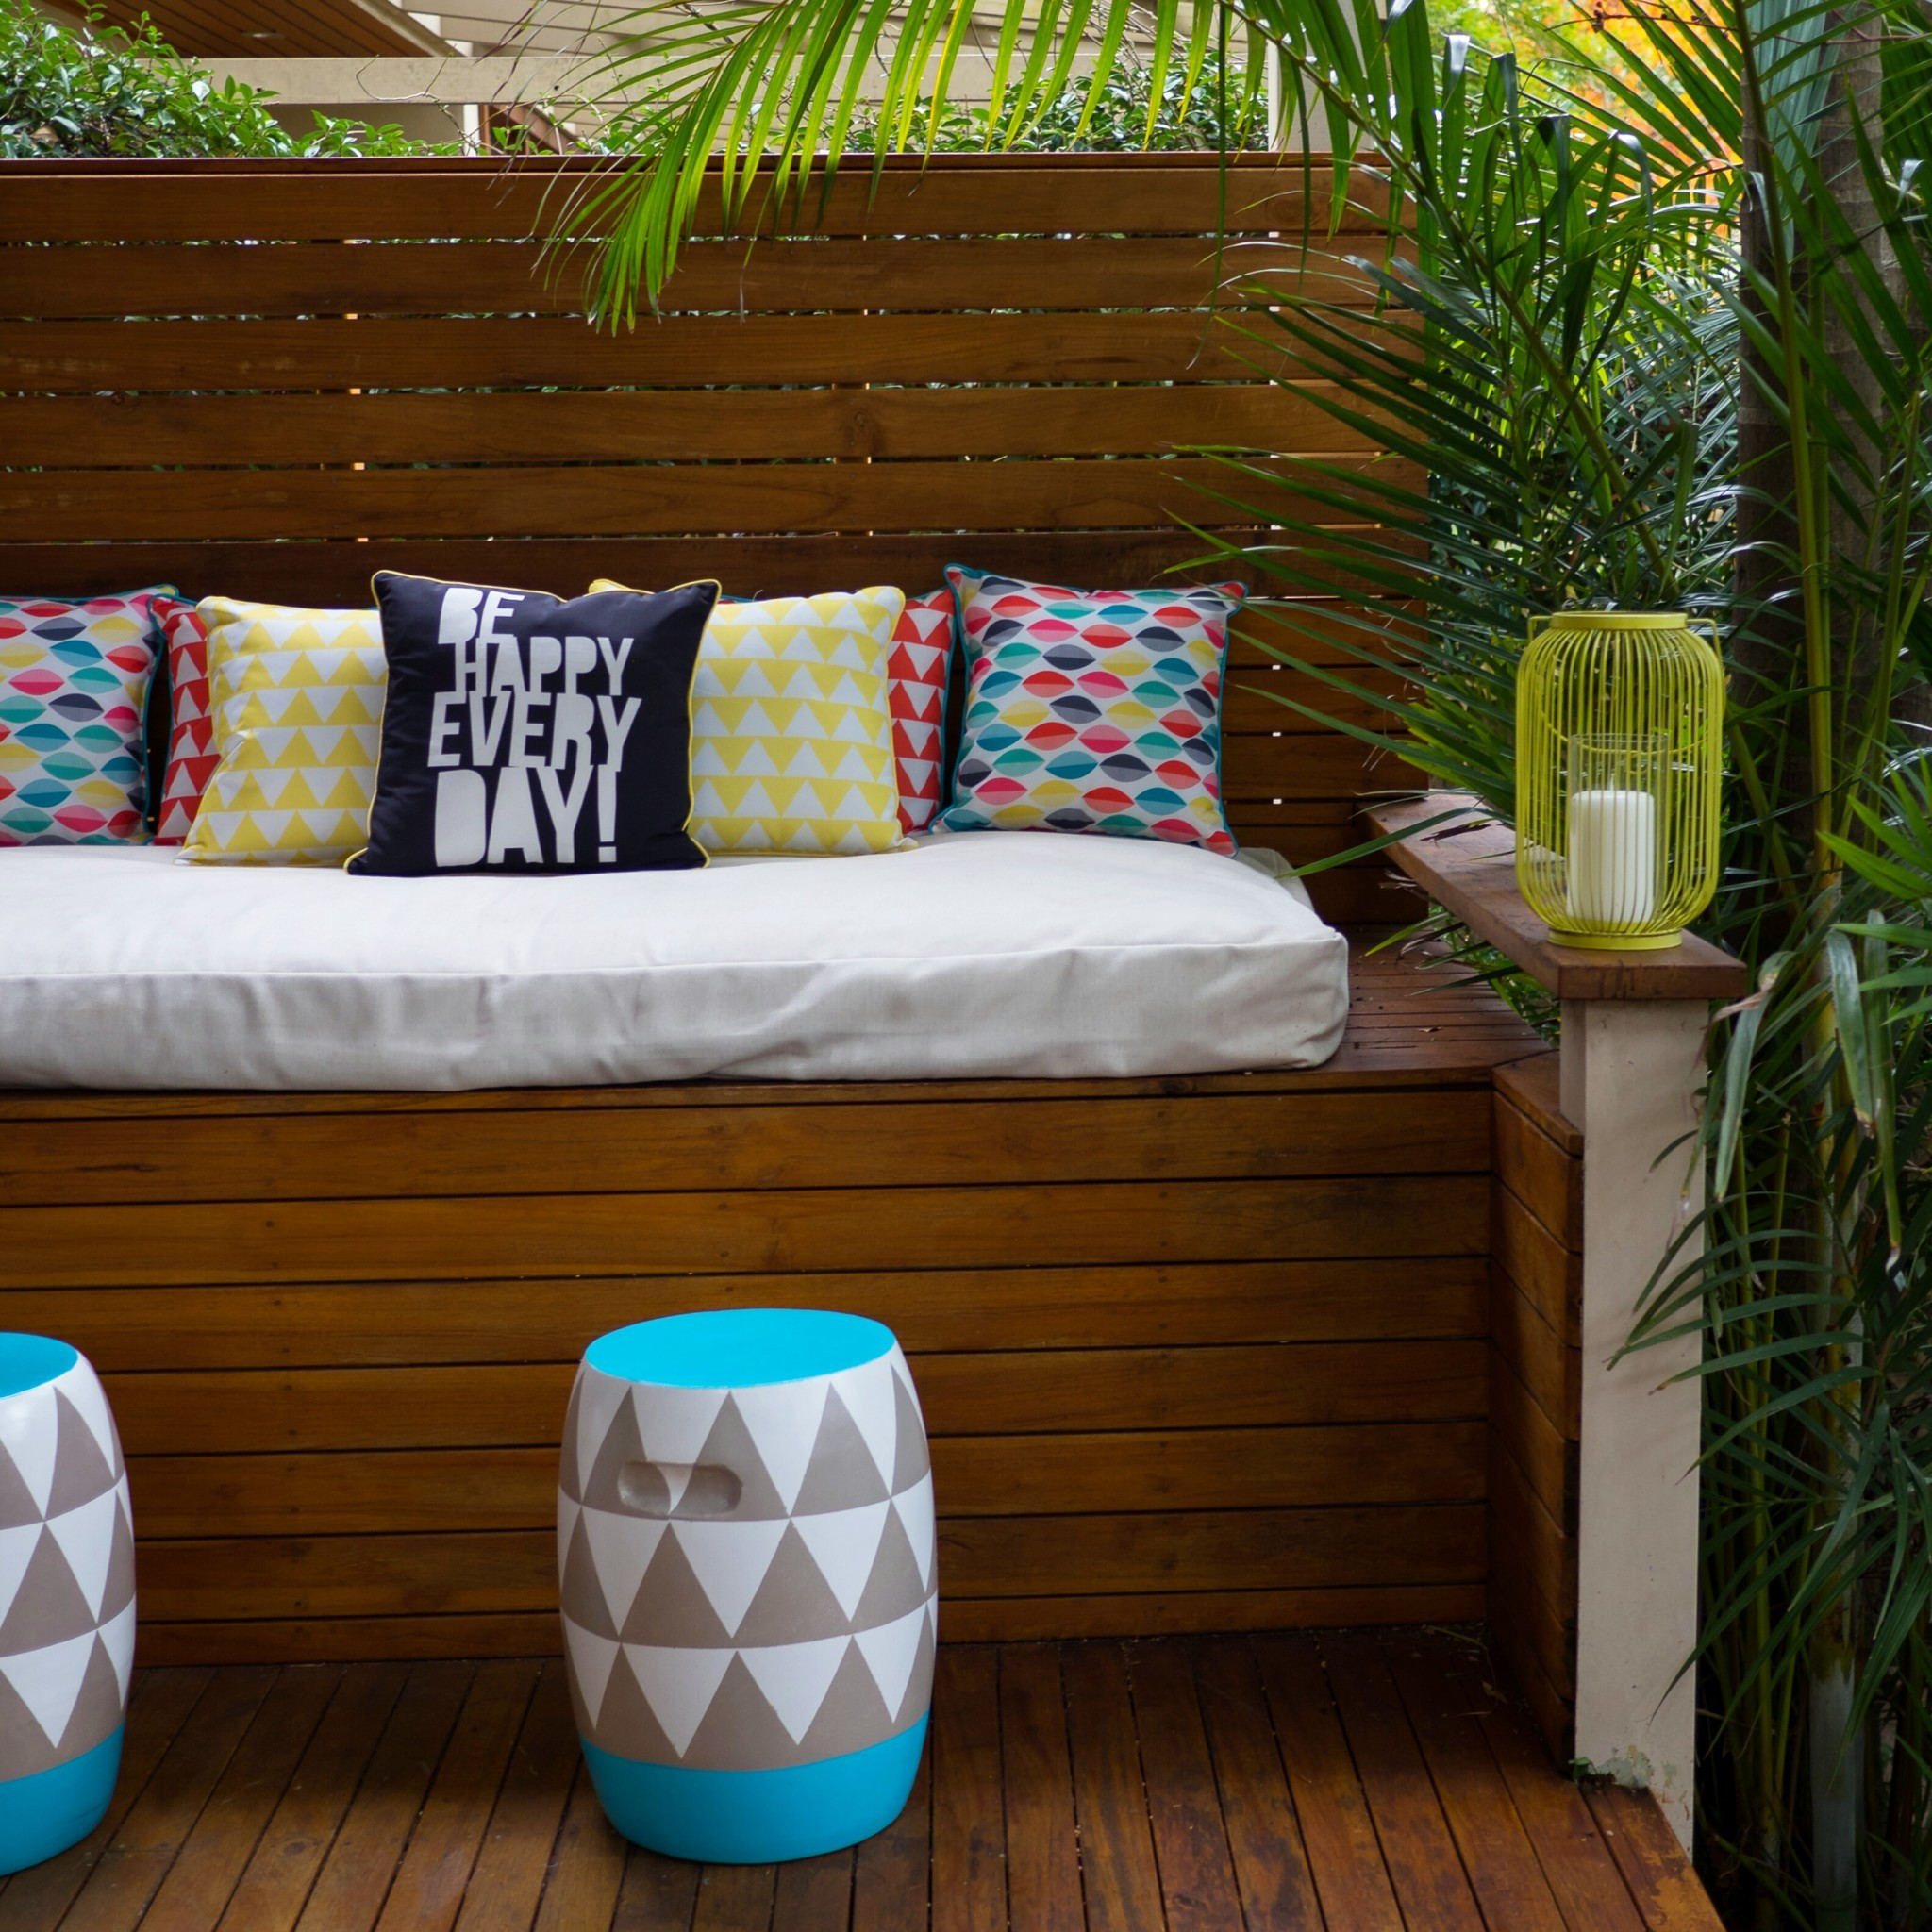 Bondi Yoga House is an intimate guest house with heart in one of Sydney's most beloved suburbs. Image © Bondi Yoga House